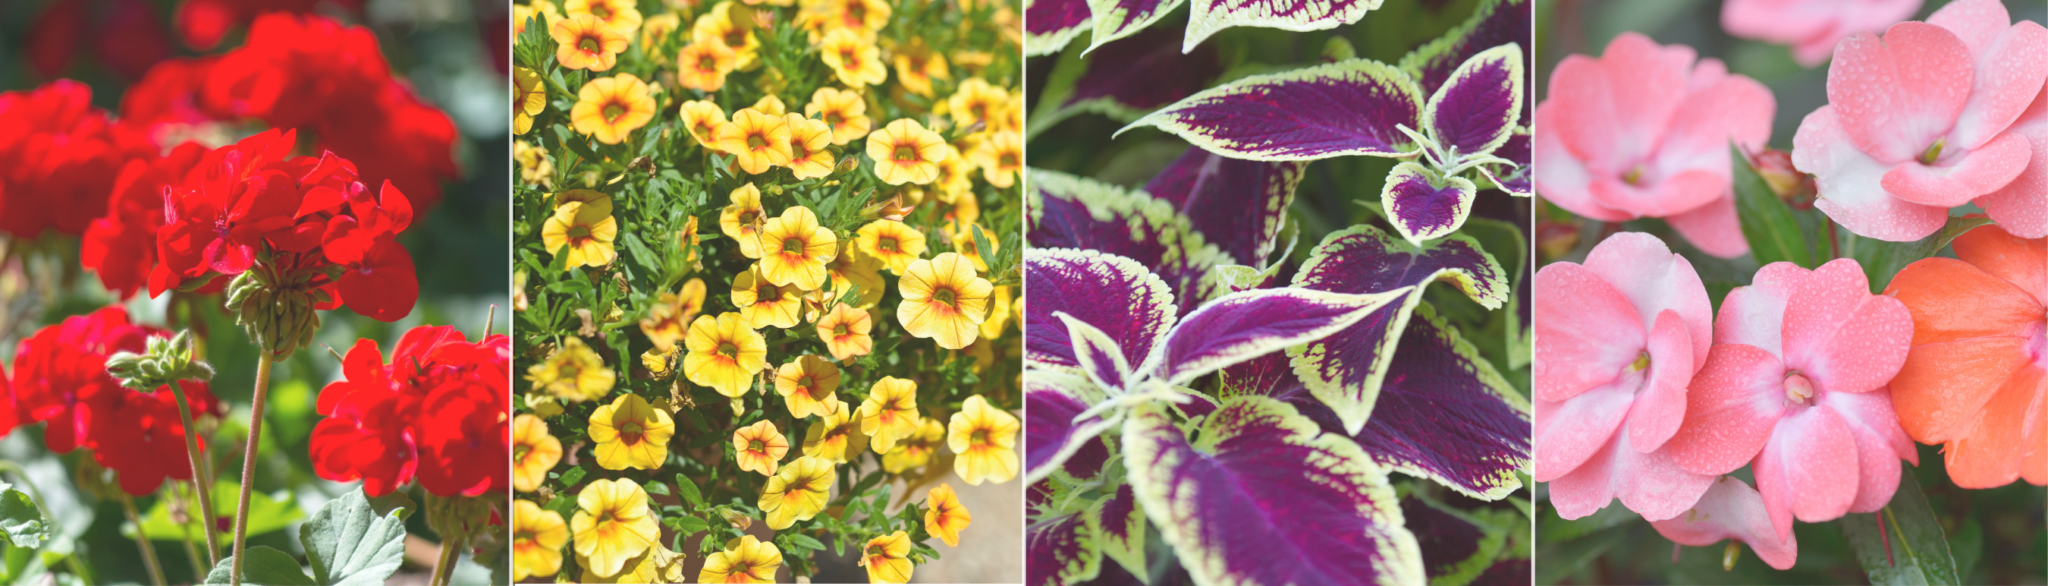 Overwintering annuals